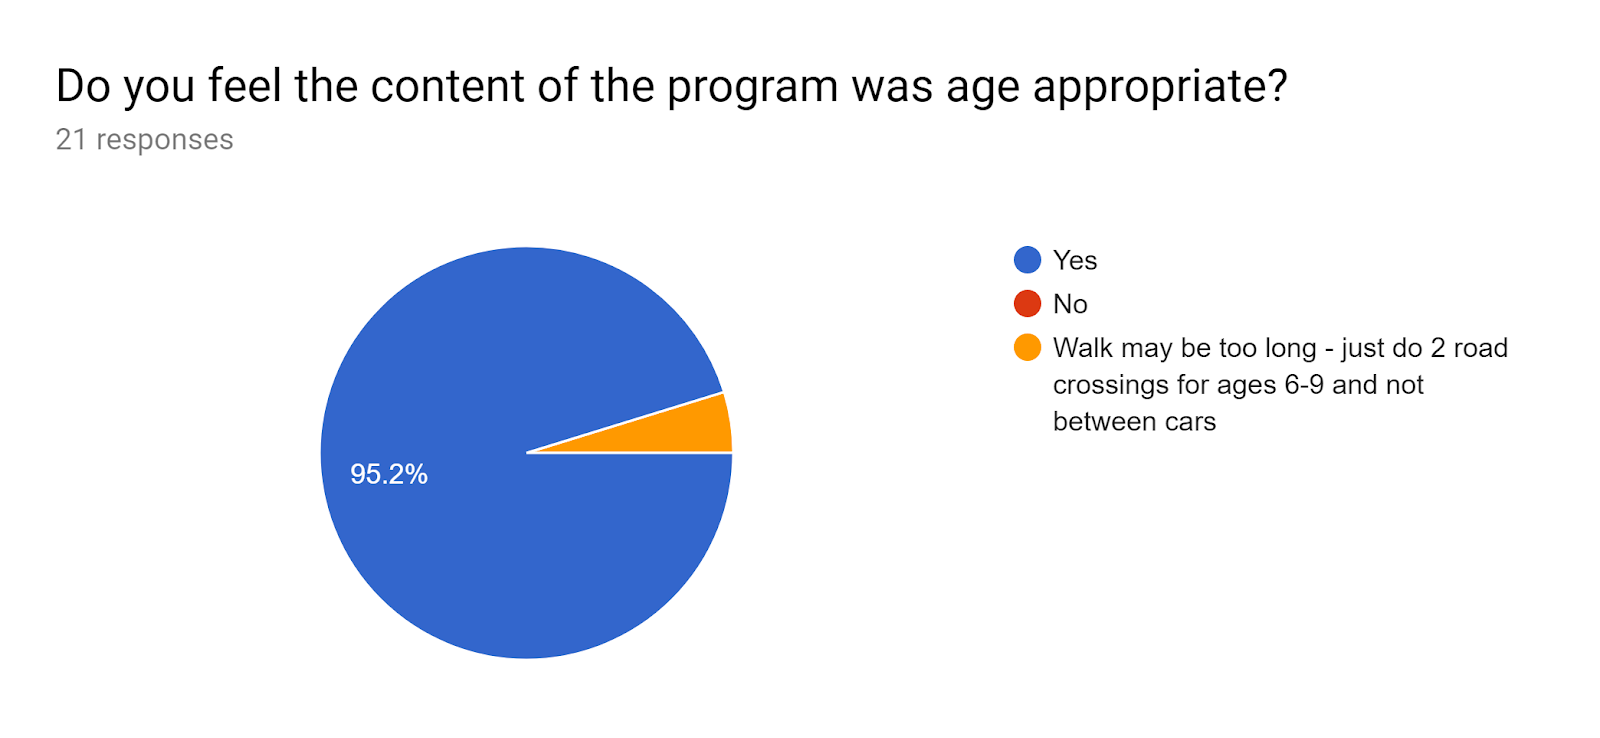 Forms response chart. Question title: Do you feel the content of the program was age appropriate?. Number of responses: 21 responses.